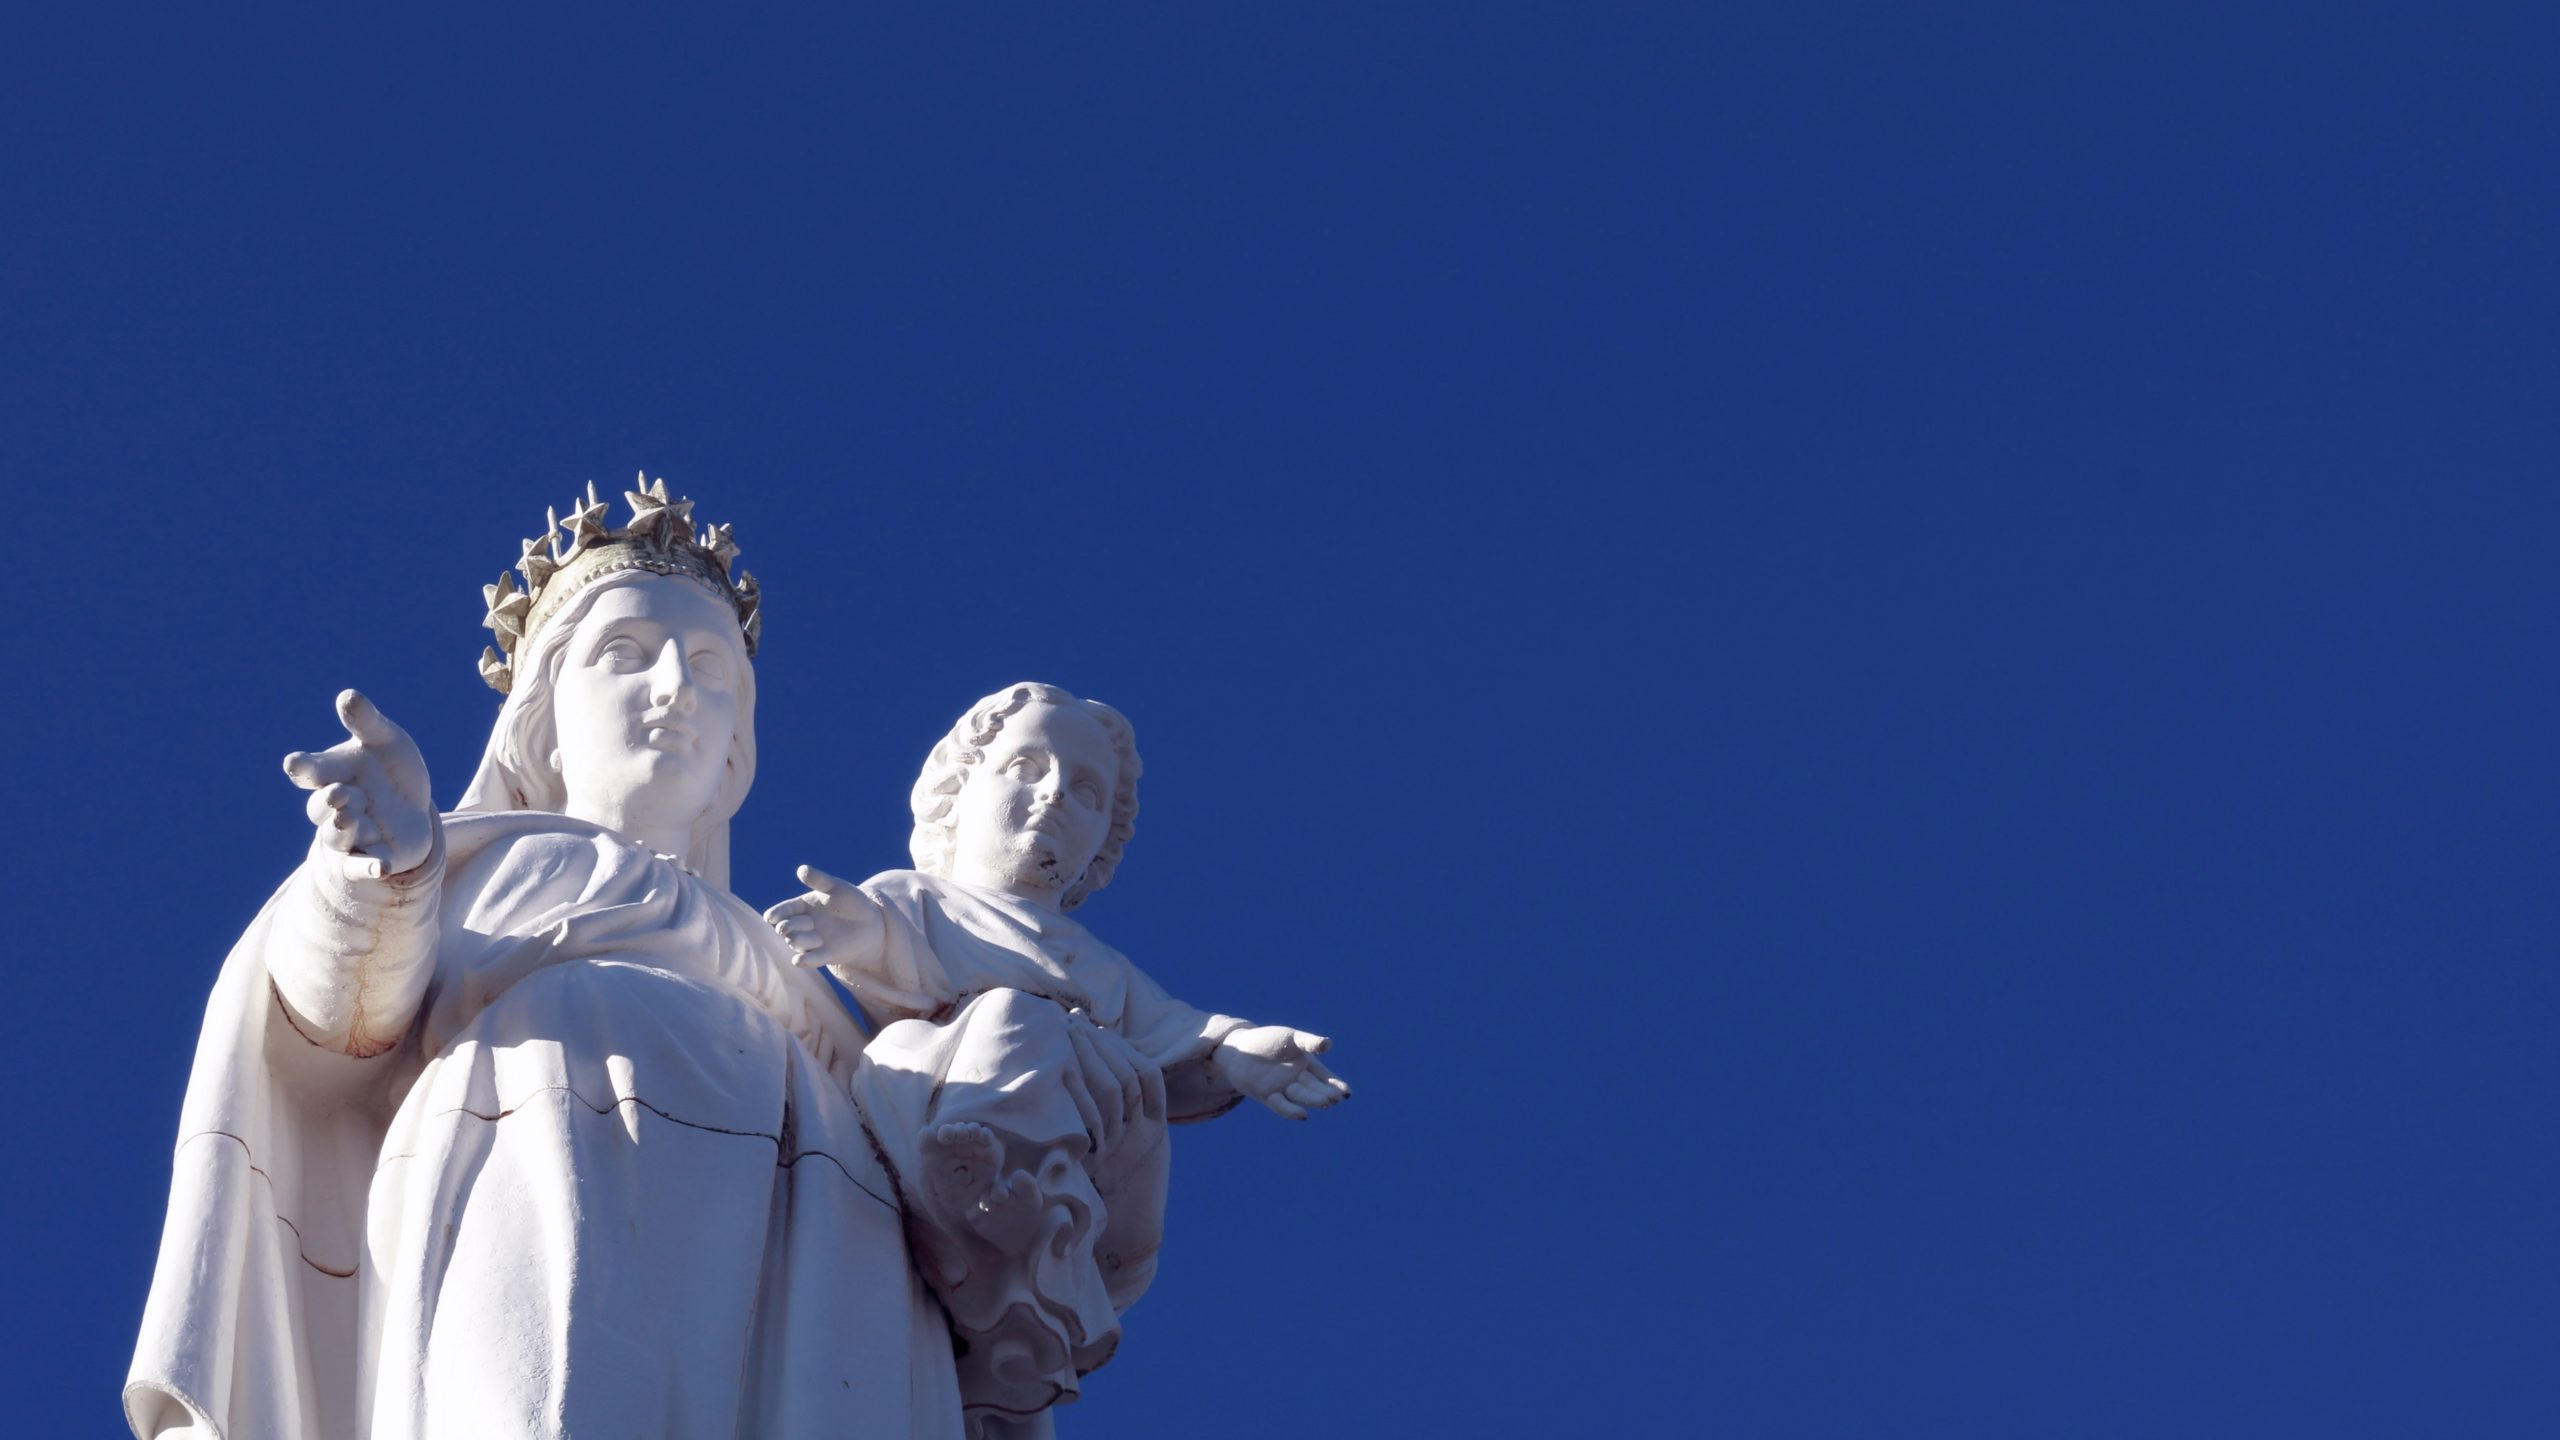 Consecration of Canada and the United States to the Blessed Virgin Mary on May 1